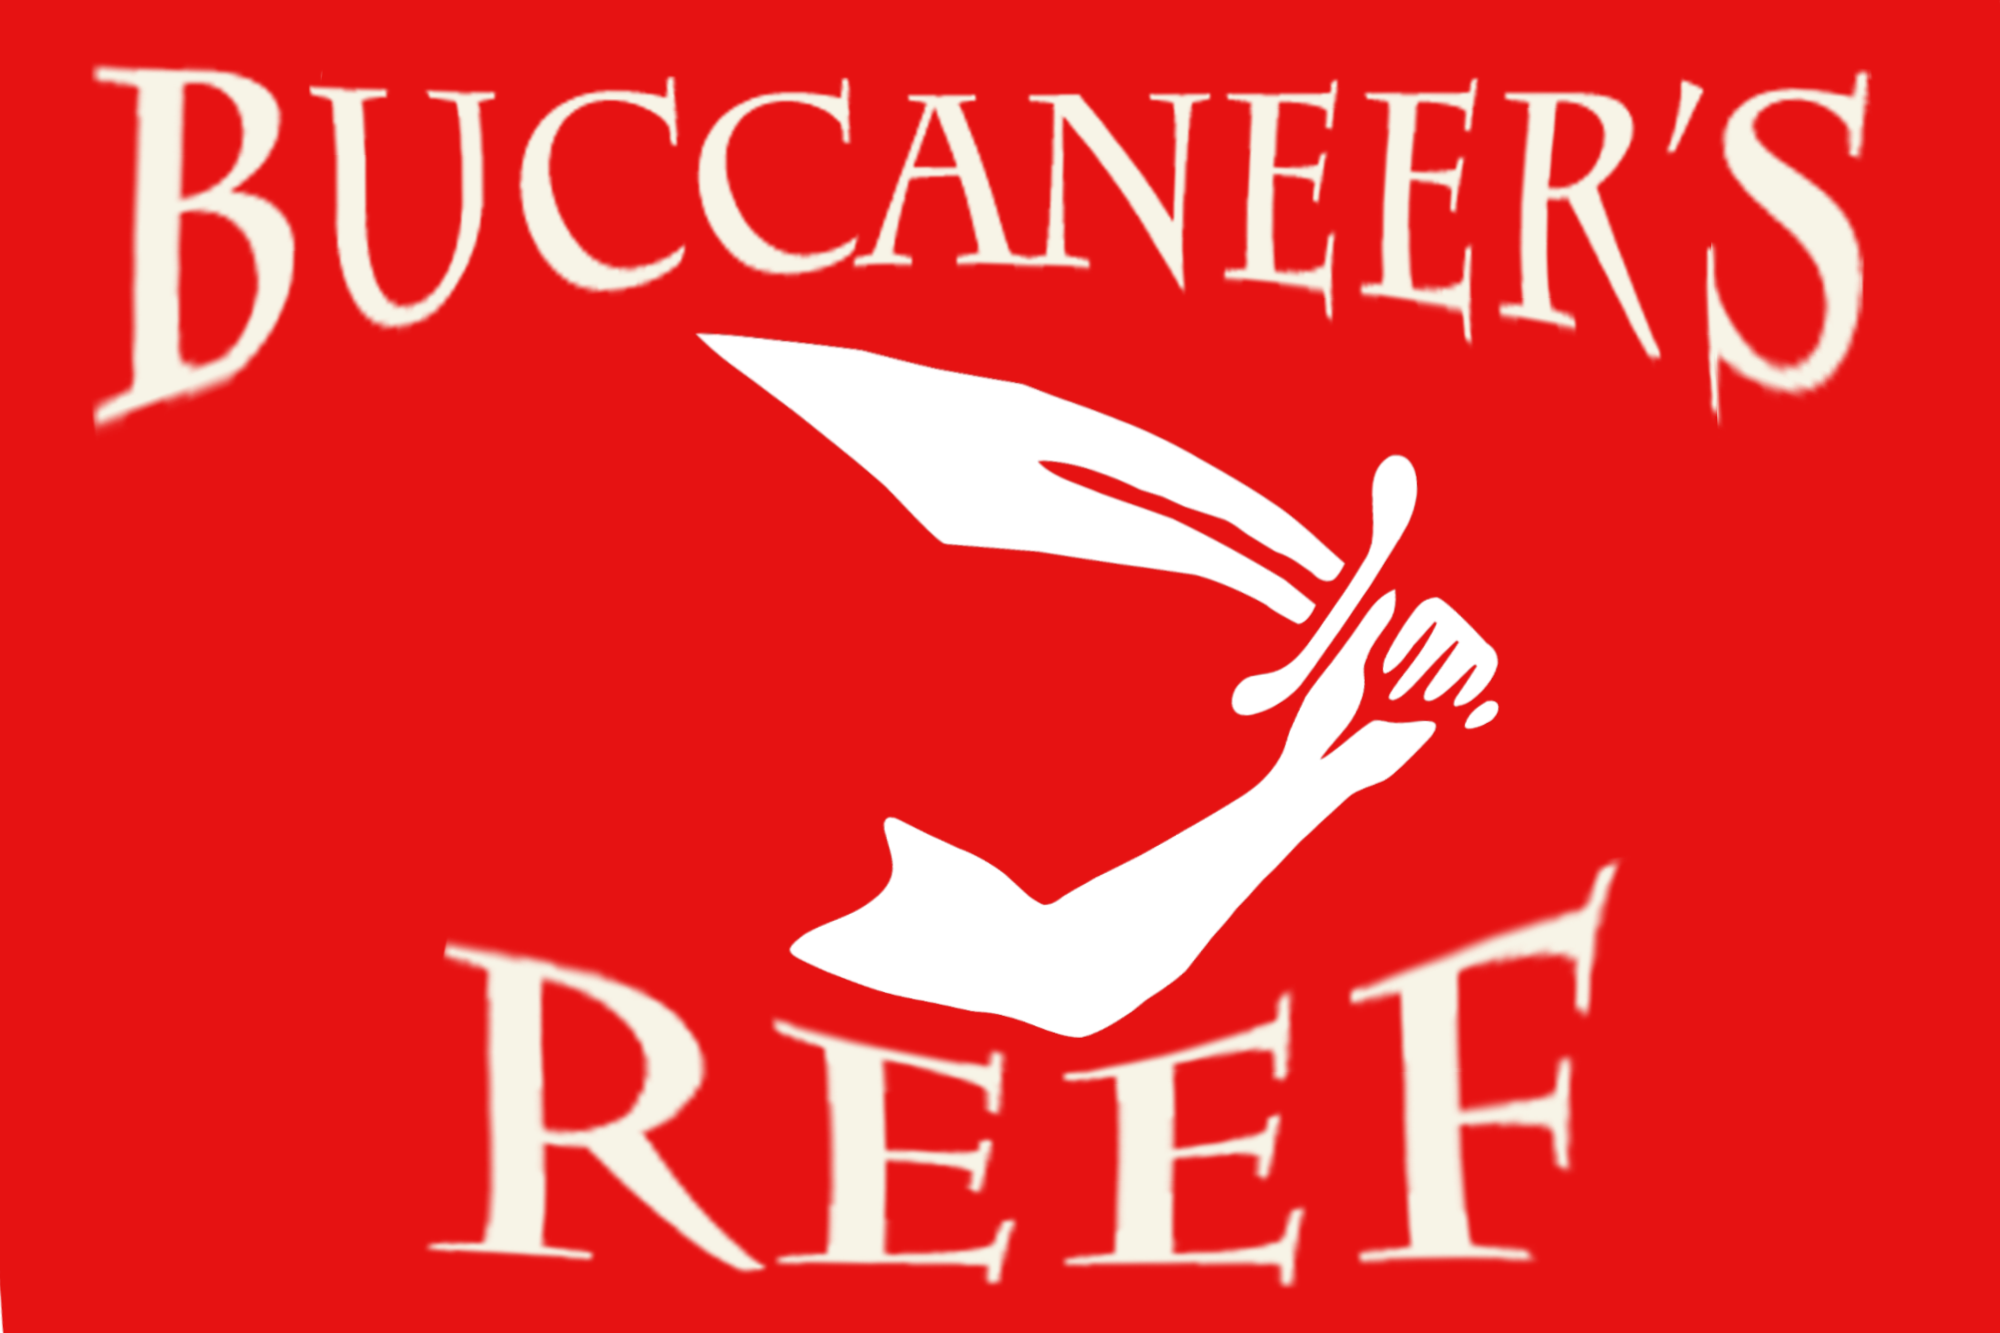 Buccaneers reef logo copy